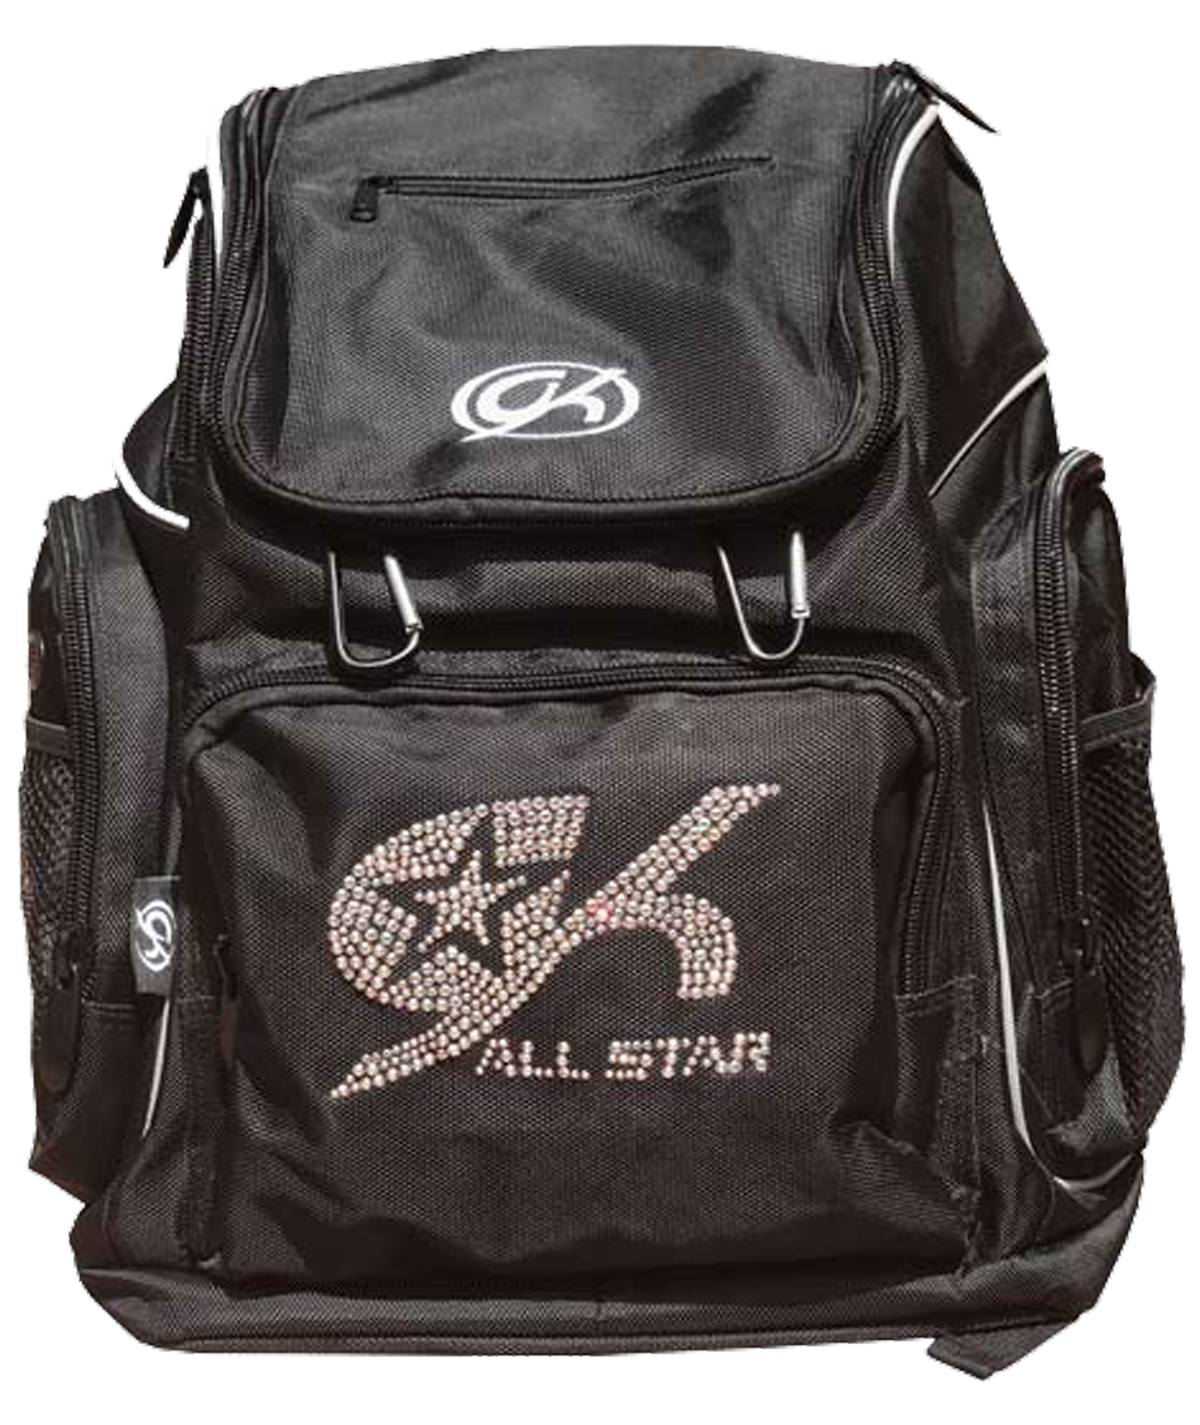 GK All Star All Star Essentials Backpack